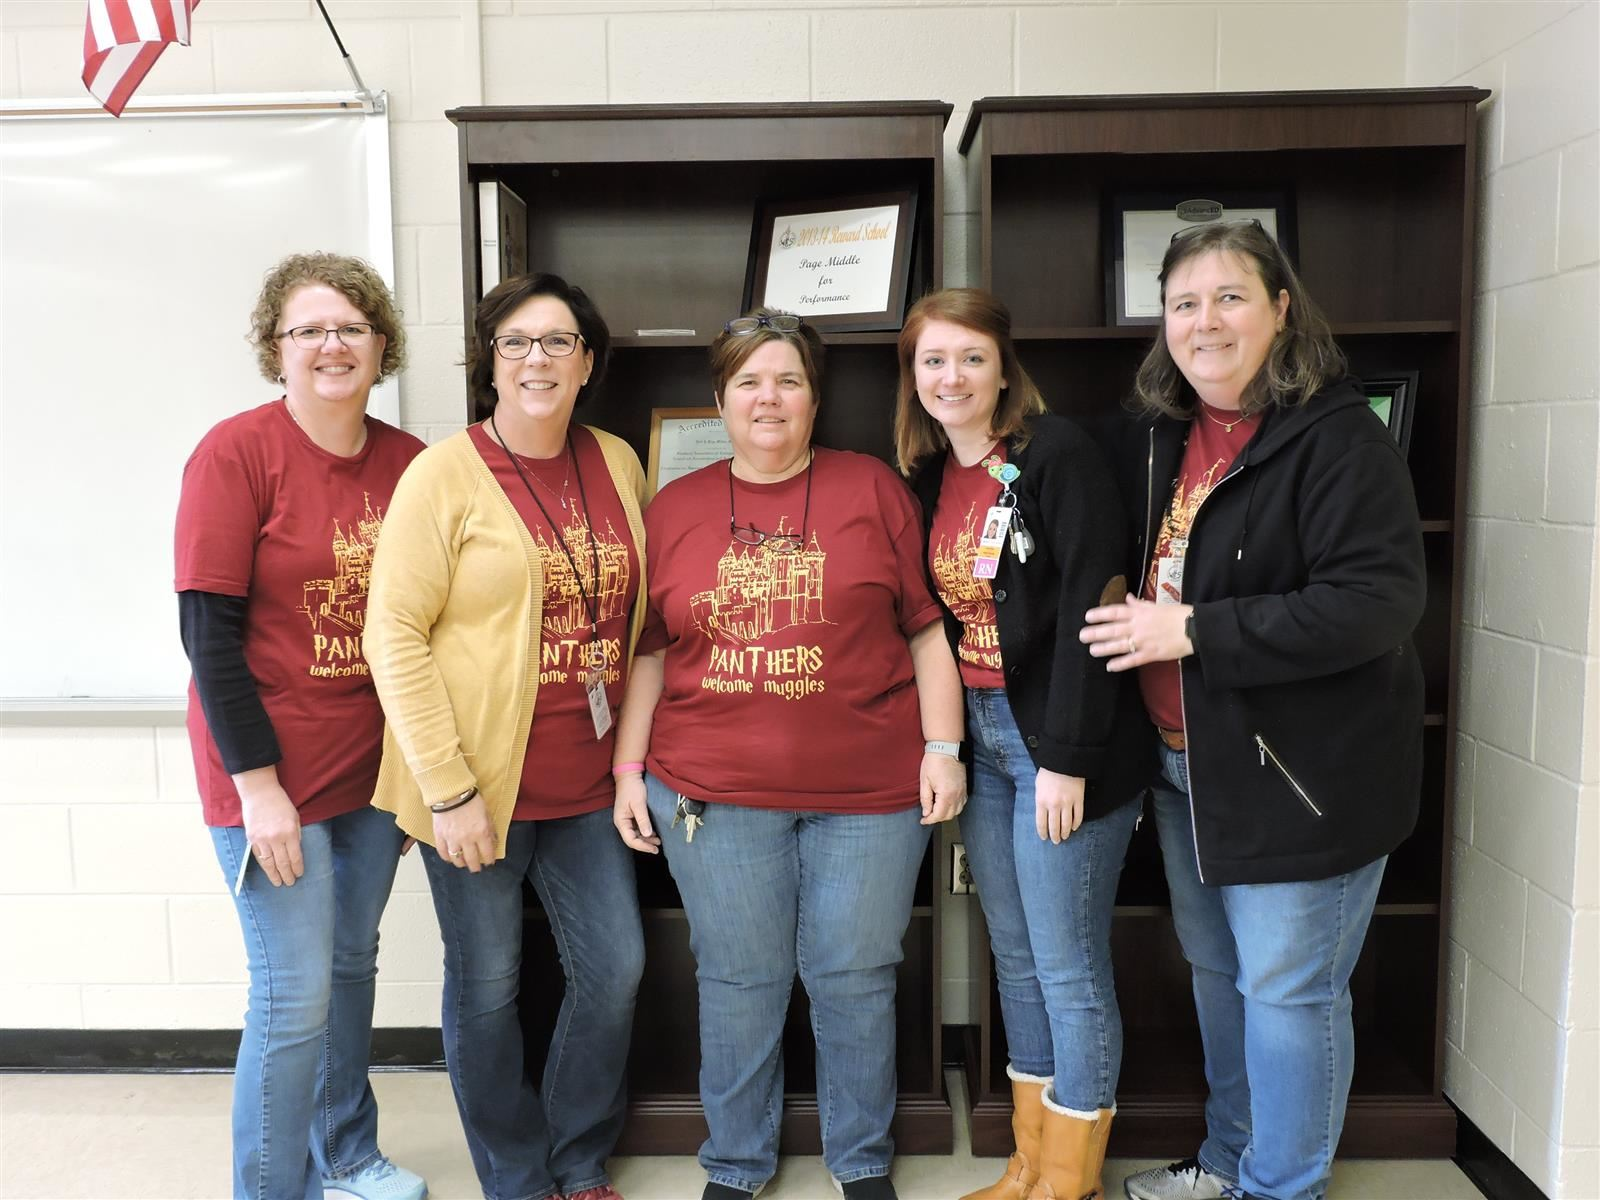 Front office staff group of five standing together